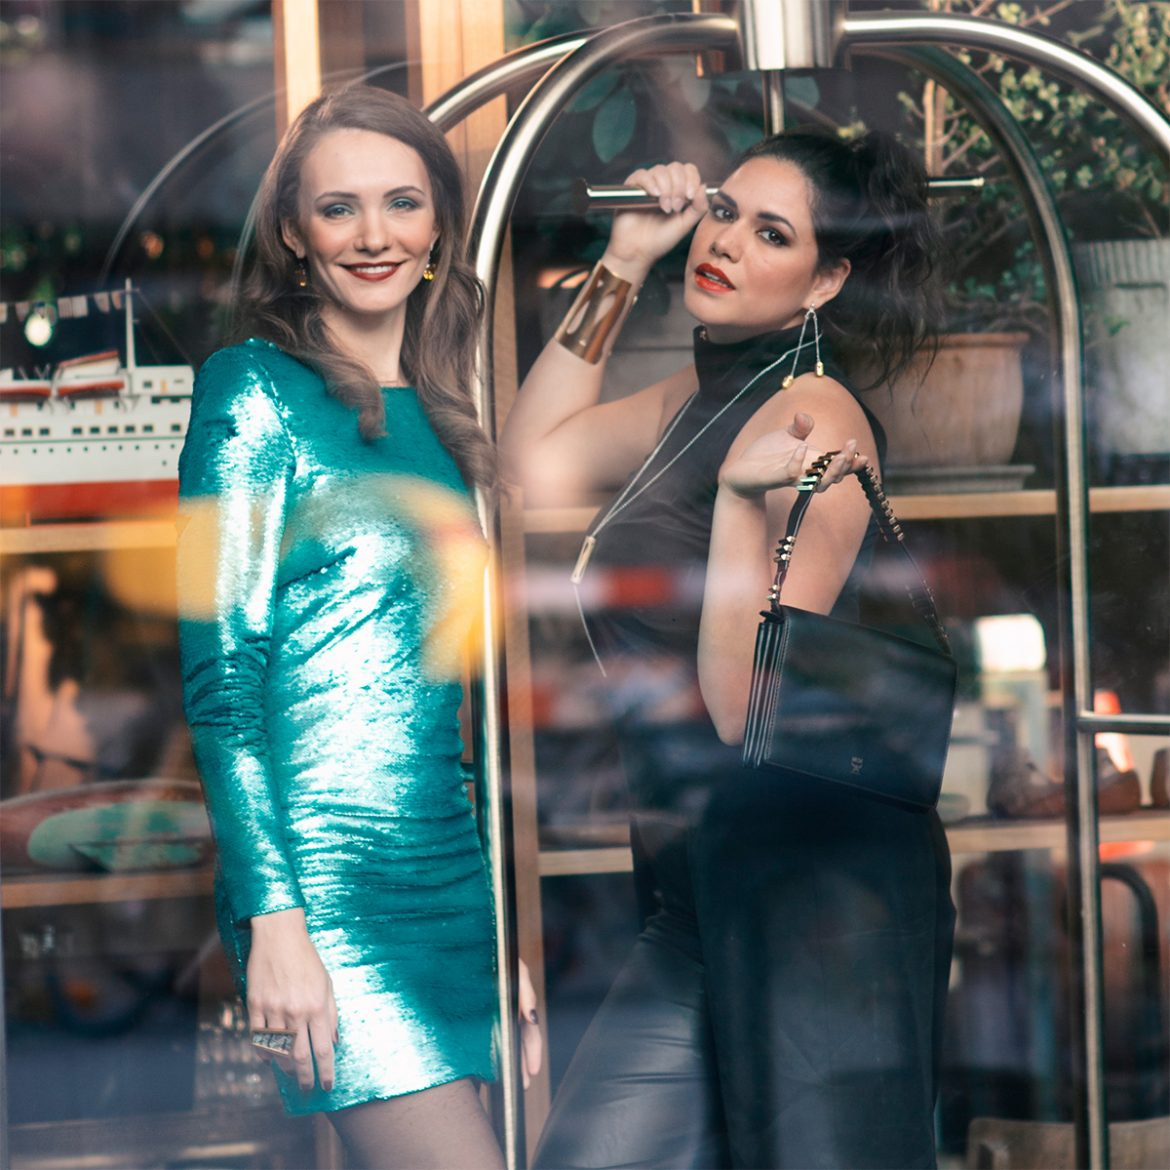 Silvester party outfit Fashion Glitzer Galmour